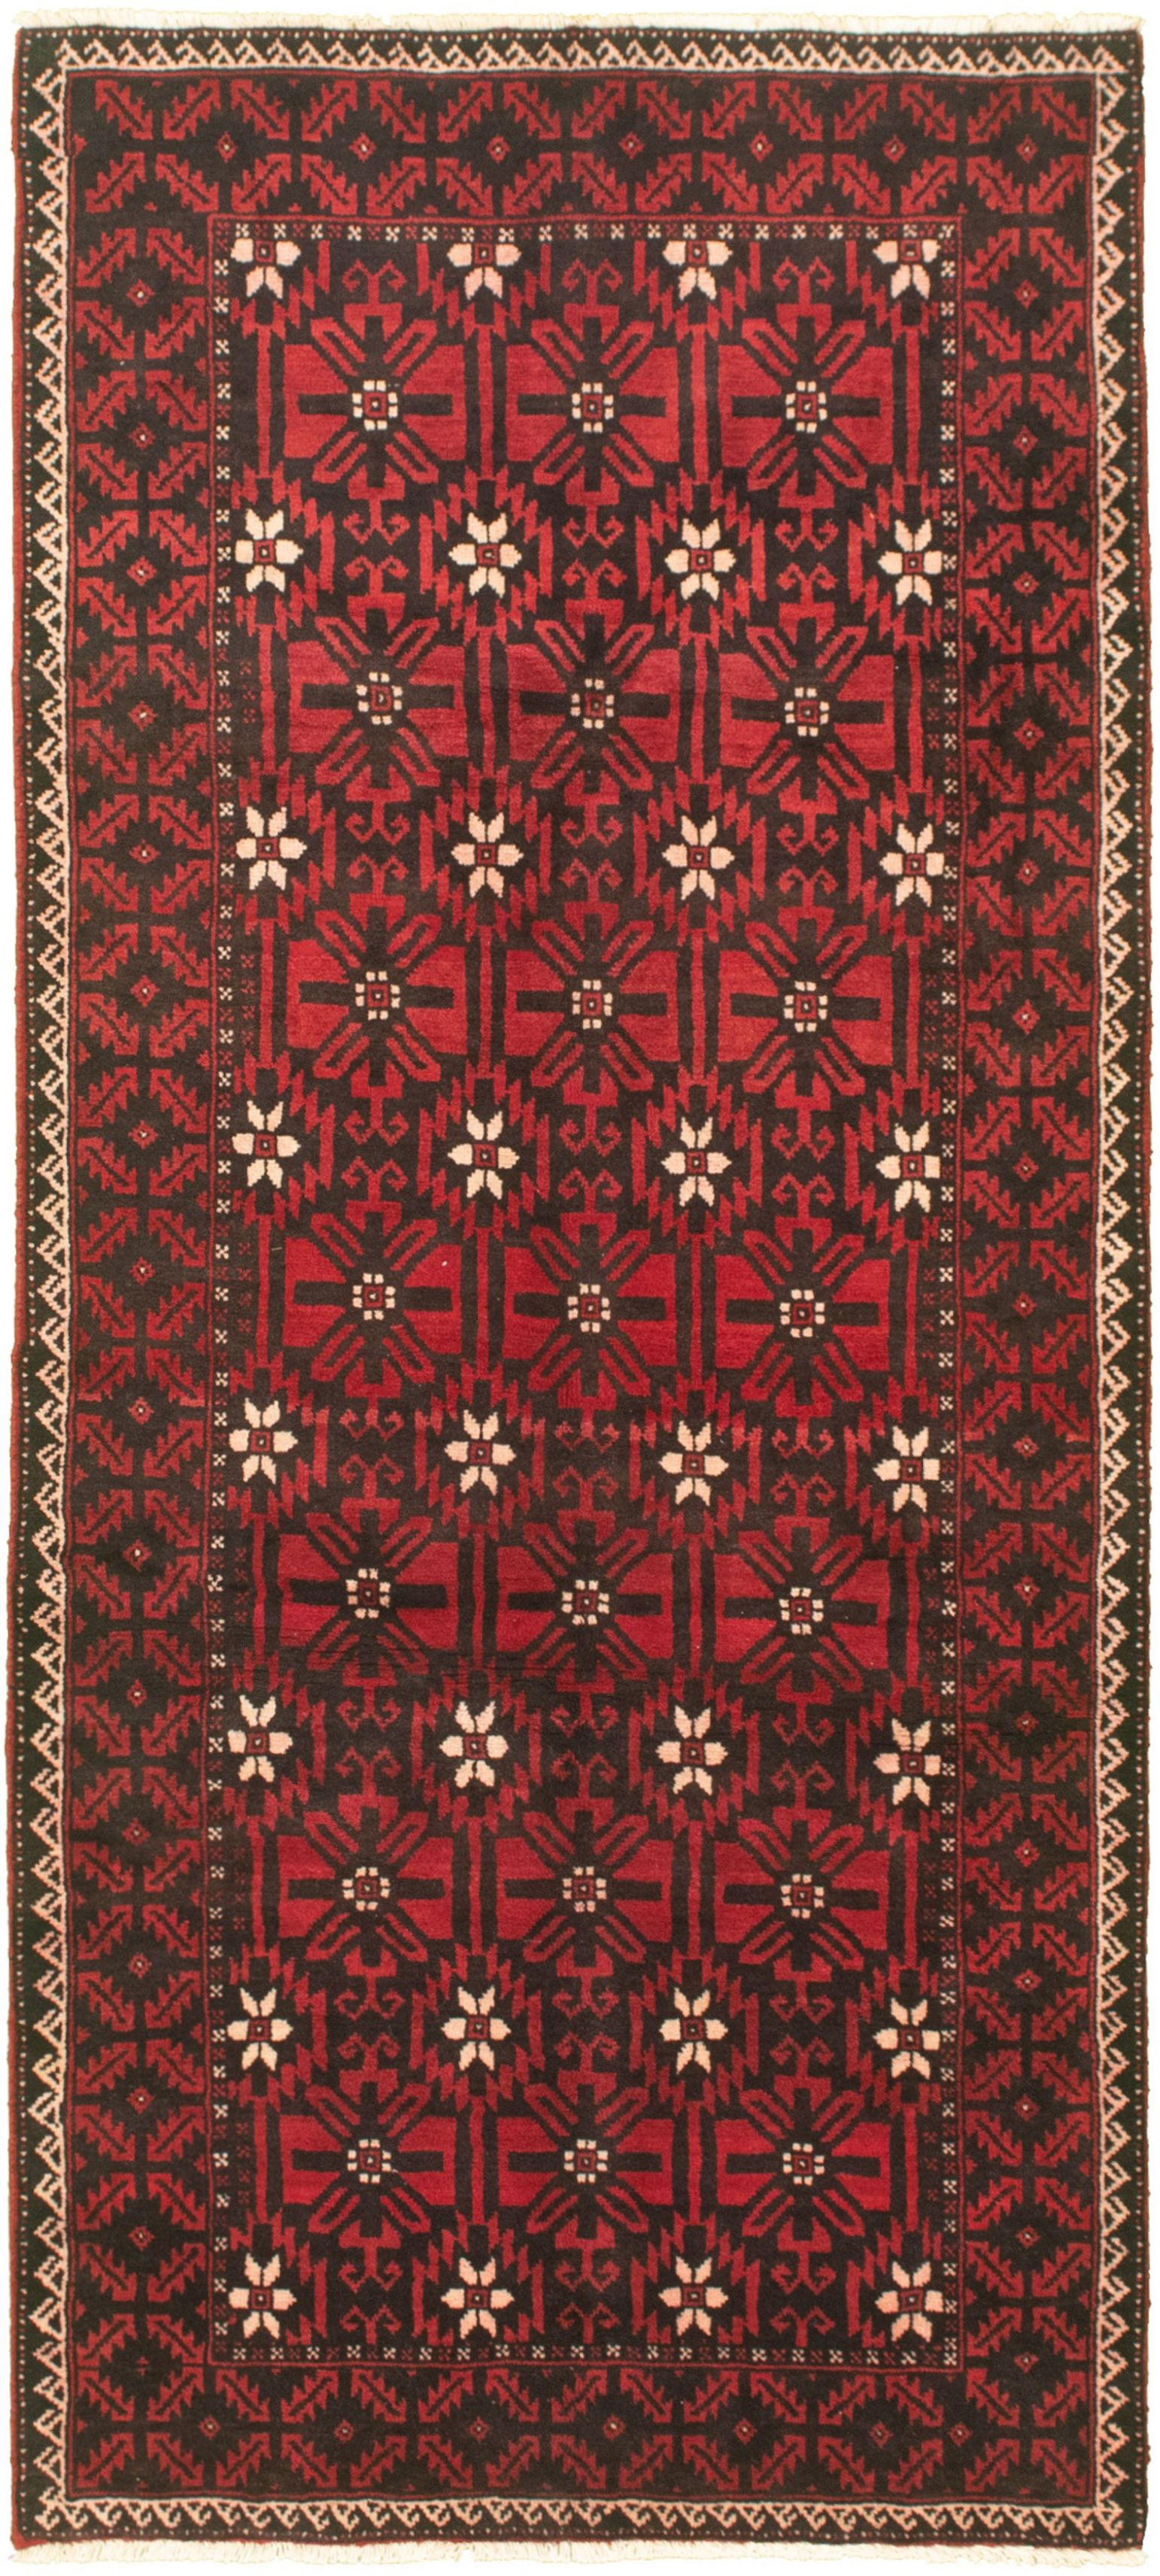 """Hand-knotted Authentic Turkish Red Wool Rug 3'7"""" x 8'2""""  Size: 3'7"""" x 8'2"""""""